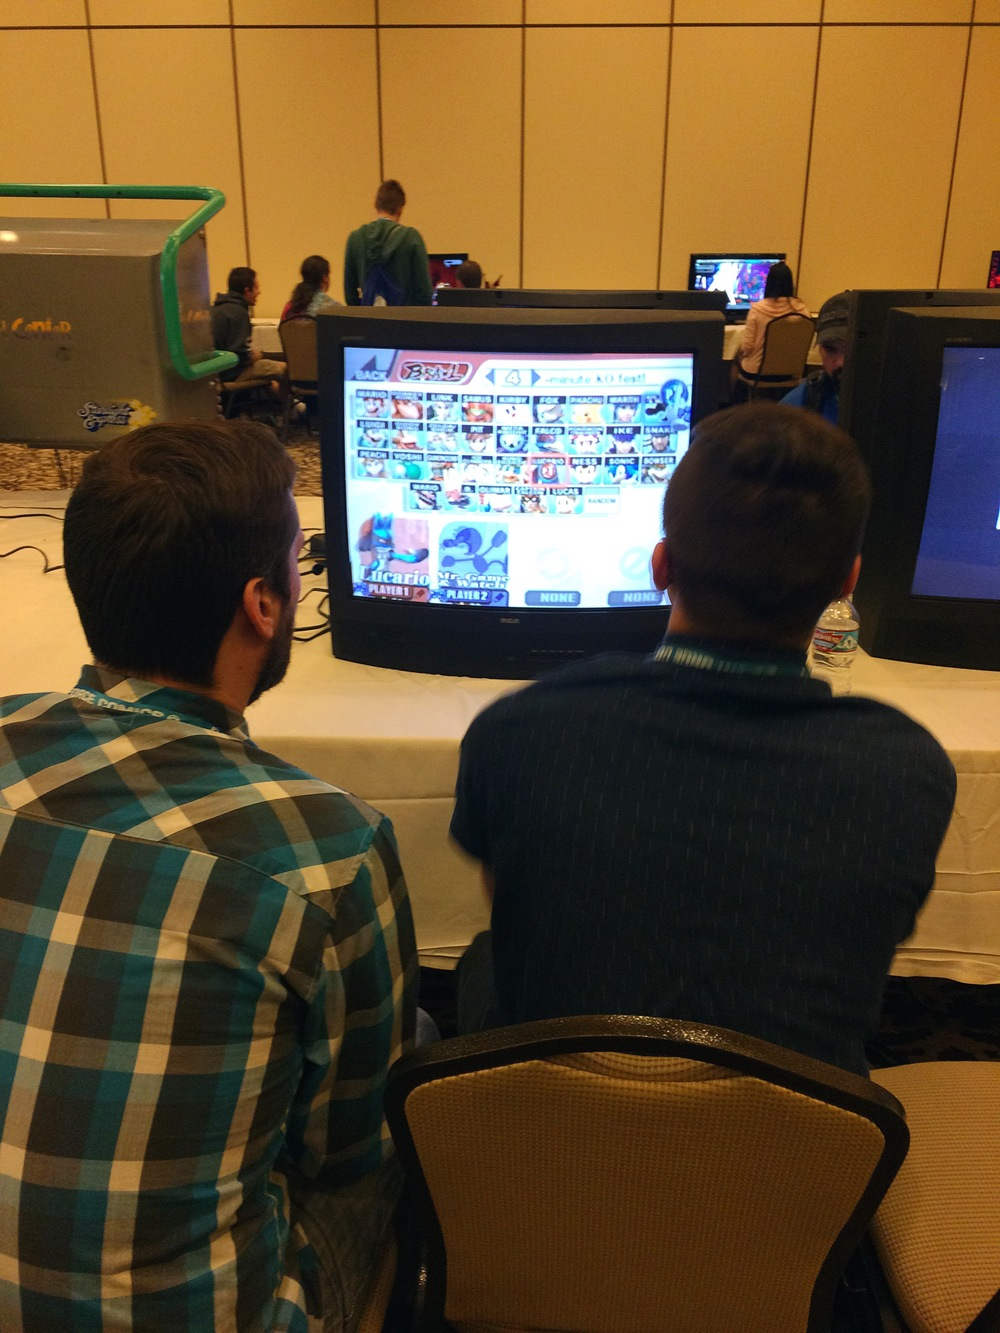 John & our boy Trevor playing Smash Bros. old school style.